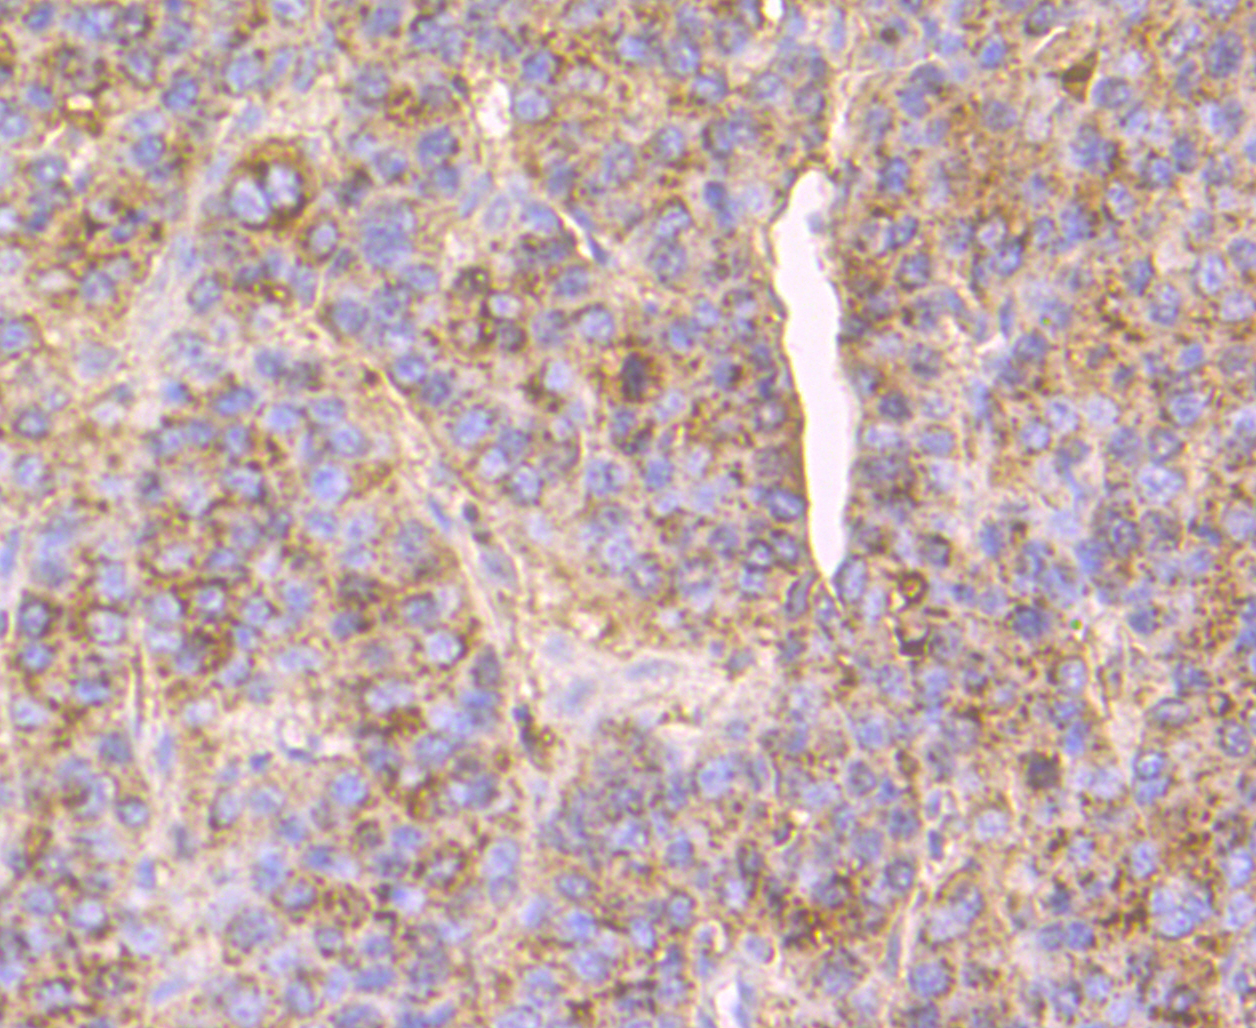 Immunohistochemical analysis of paraffin-embedded human liver cancer tissue using anti-Cathepsin D antibody. The section was pre-treated using heat mediated antigen retrieval with Tris-EDTA buffer (pH 8.0-8.4) for 20 minutes.The tissues were blocked in 5% BSA for 30 minutes at room temperature, washed with ddH2O and PBS, and then probed with the antibody (EM1901-02) at 1/200 dilution, for 30 minutes at room temperature and detected using an HRP conjugated compact polymer system. DAB was used as the chromogen. Counter stained with hematoxylin and mounted with DPX.